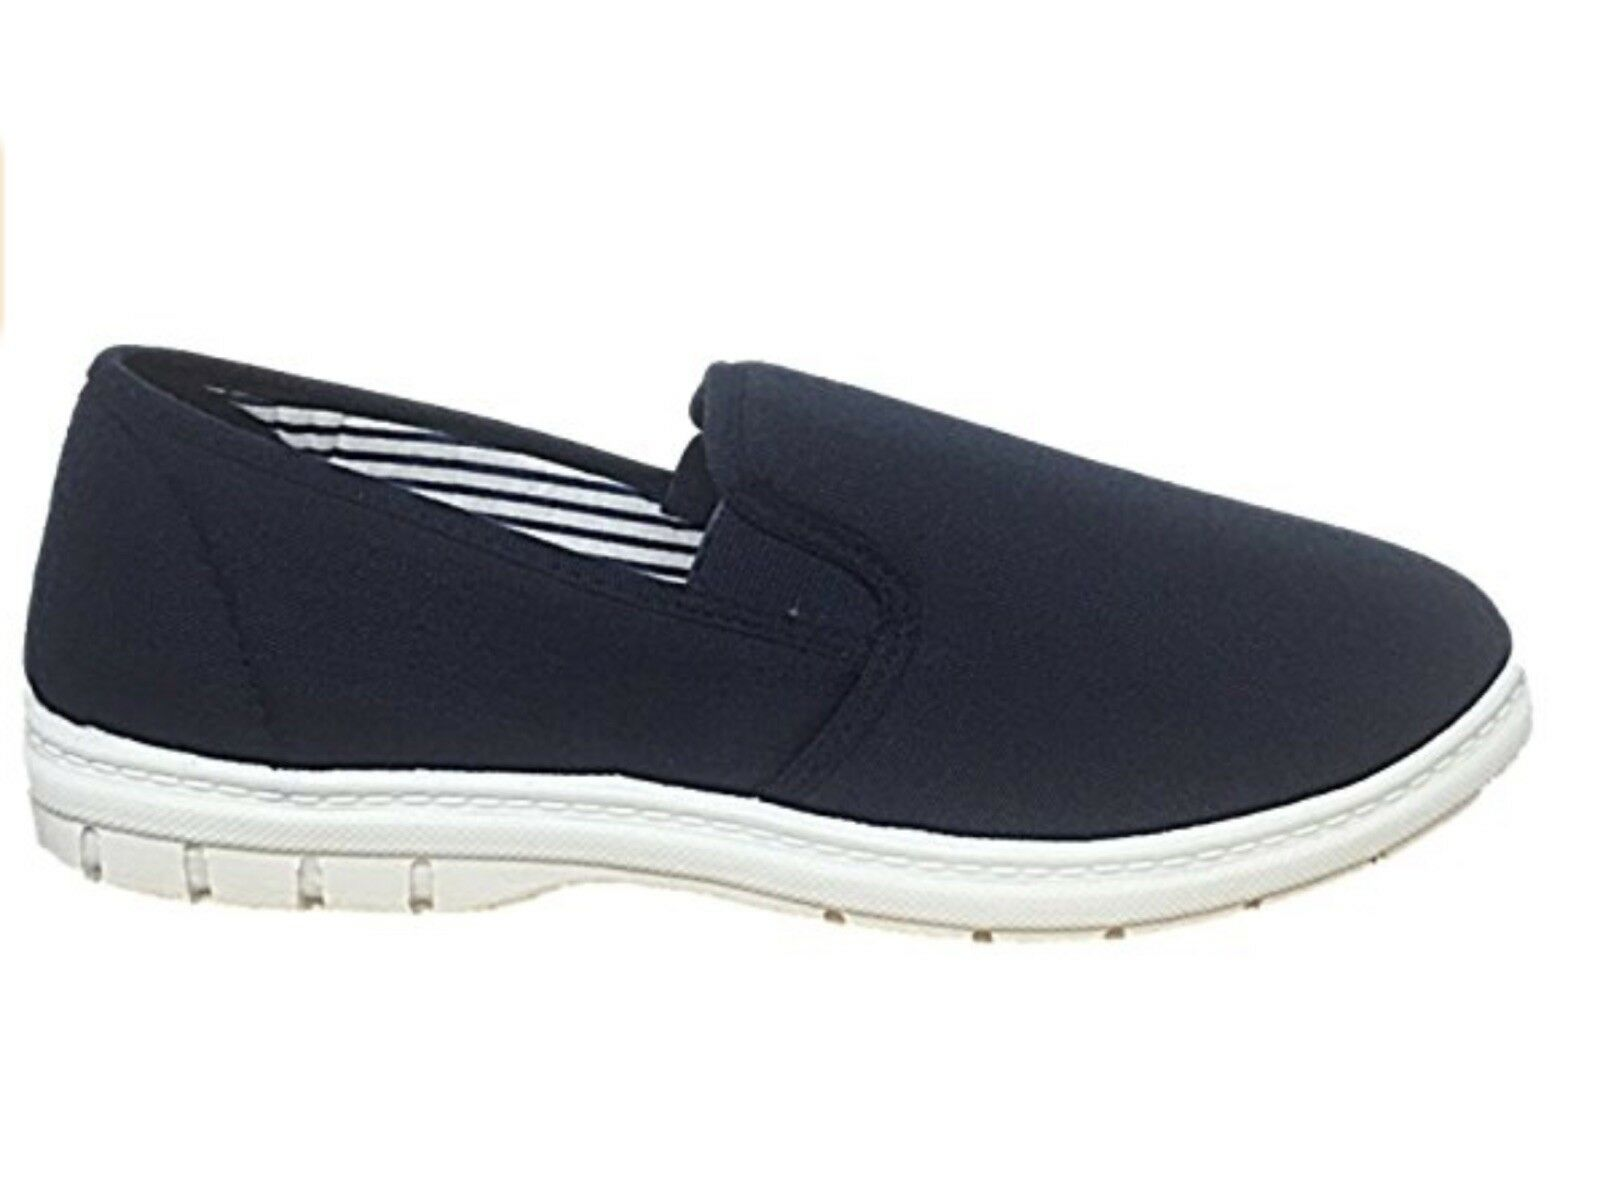 Canvas Slip On Wider Fit Plimsoll Pump Trainer By Shoe Size Tree - Navy - Size Shoe 7 756df9